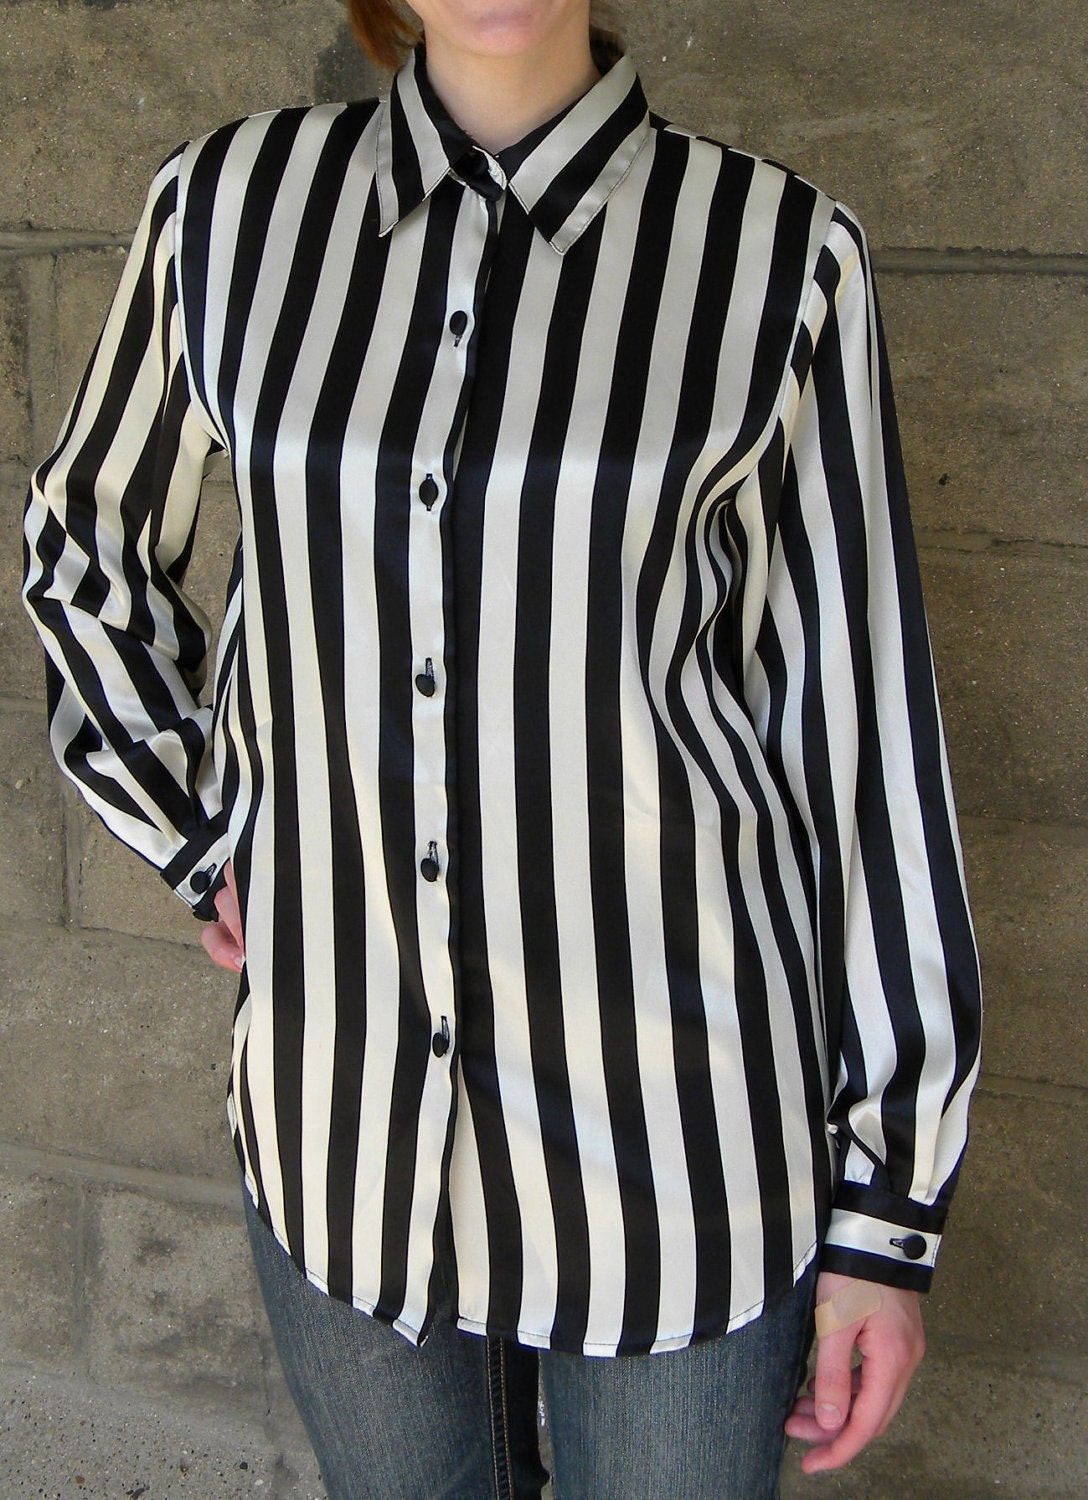 A black and white striped sleeveless blouse with pockets and buttons all the way down the front. Slight slits at the side and the back is slightly longer than the front.